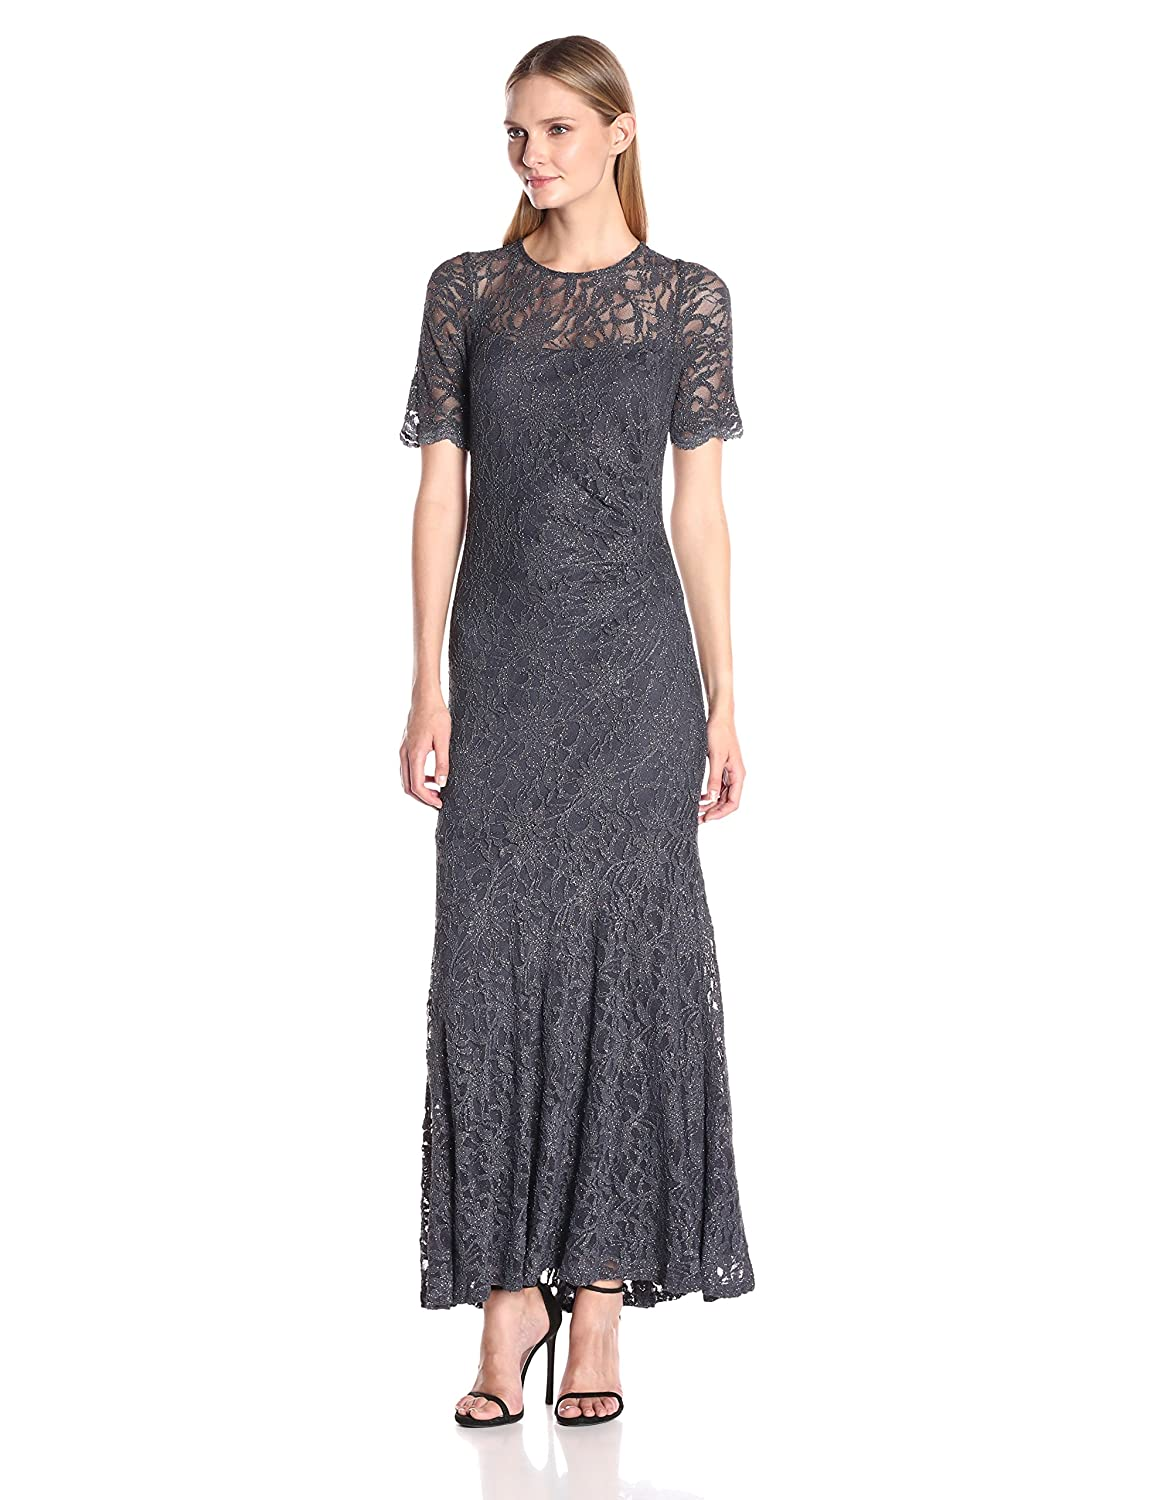 Charcoal Decode 1.8 Womens Glitter Lace Short Sleeve Mermaid Mother of Bride Groom Dress with Scallop Sleeve Detail Dress